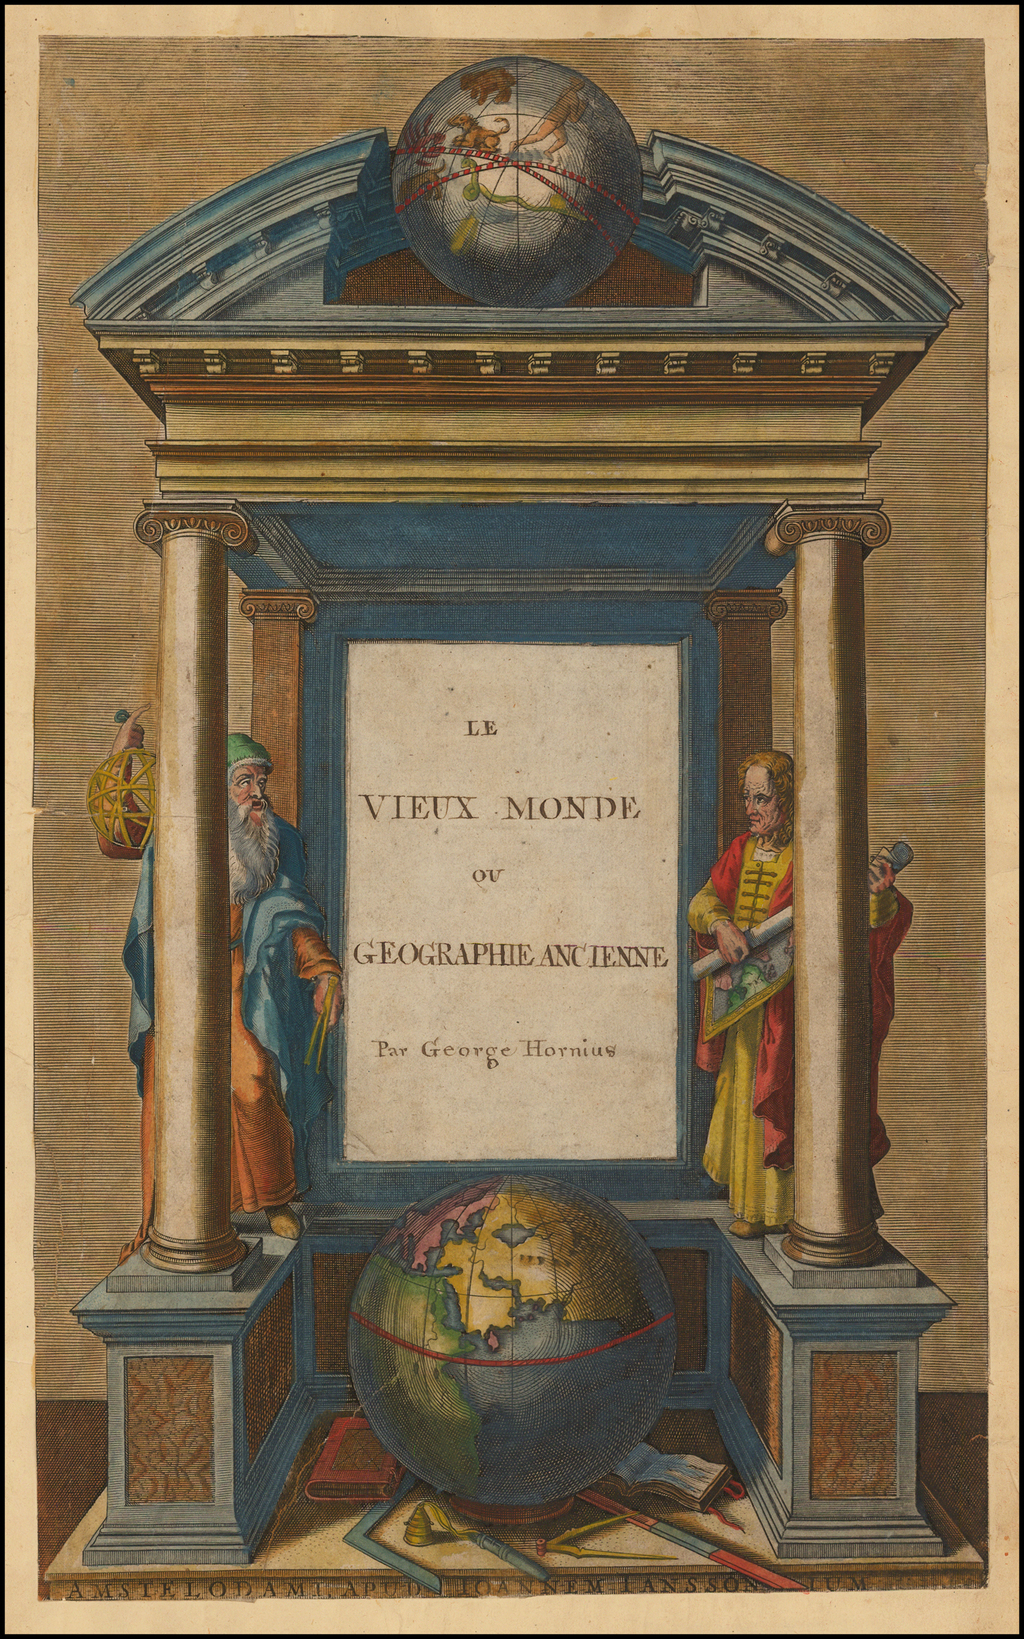 [Title Page]  Le View Monde ou Geographie Ancienne Par George Hornius By Jan Jansson